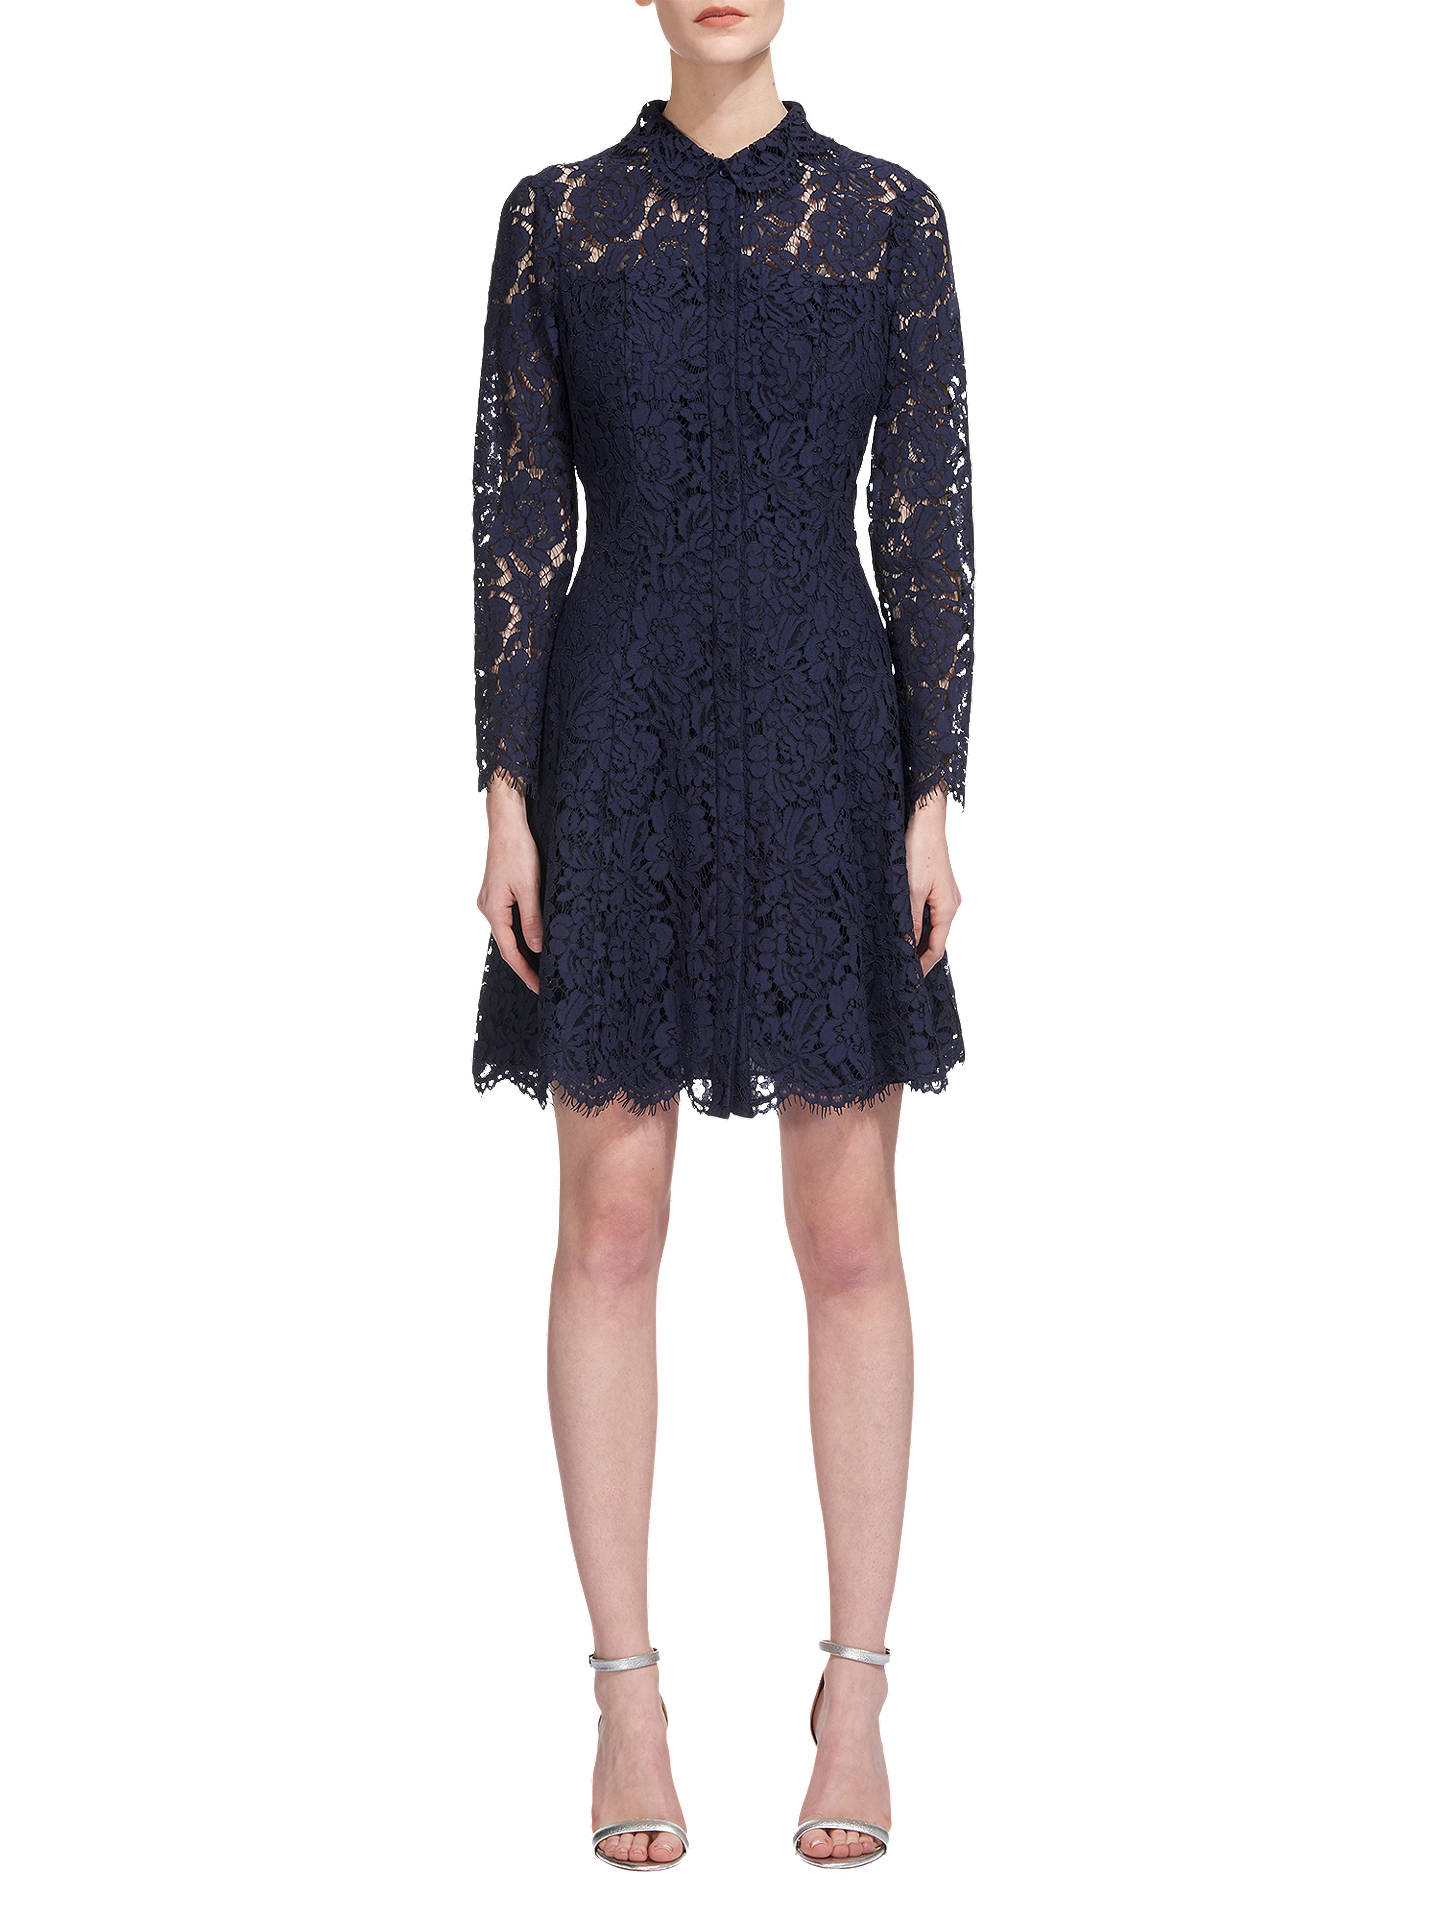 Whistles Lace Shirt Dress Navy At John Lewis Partners